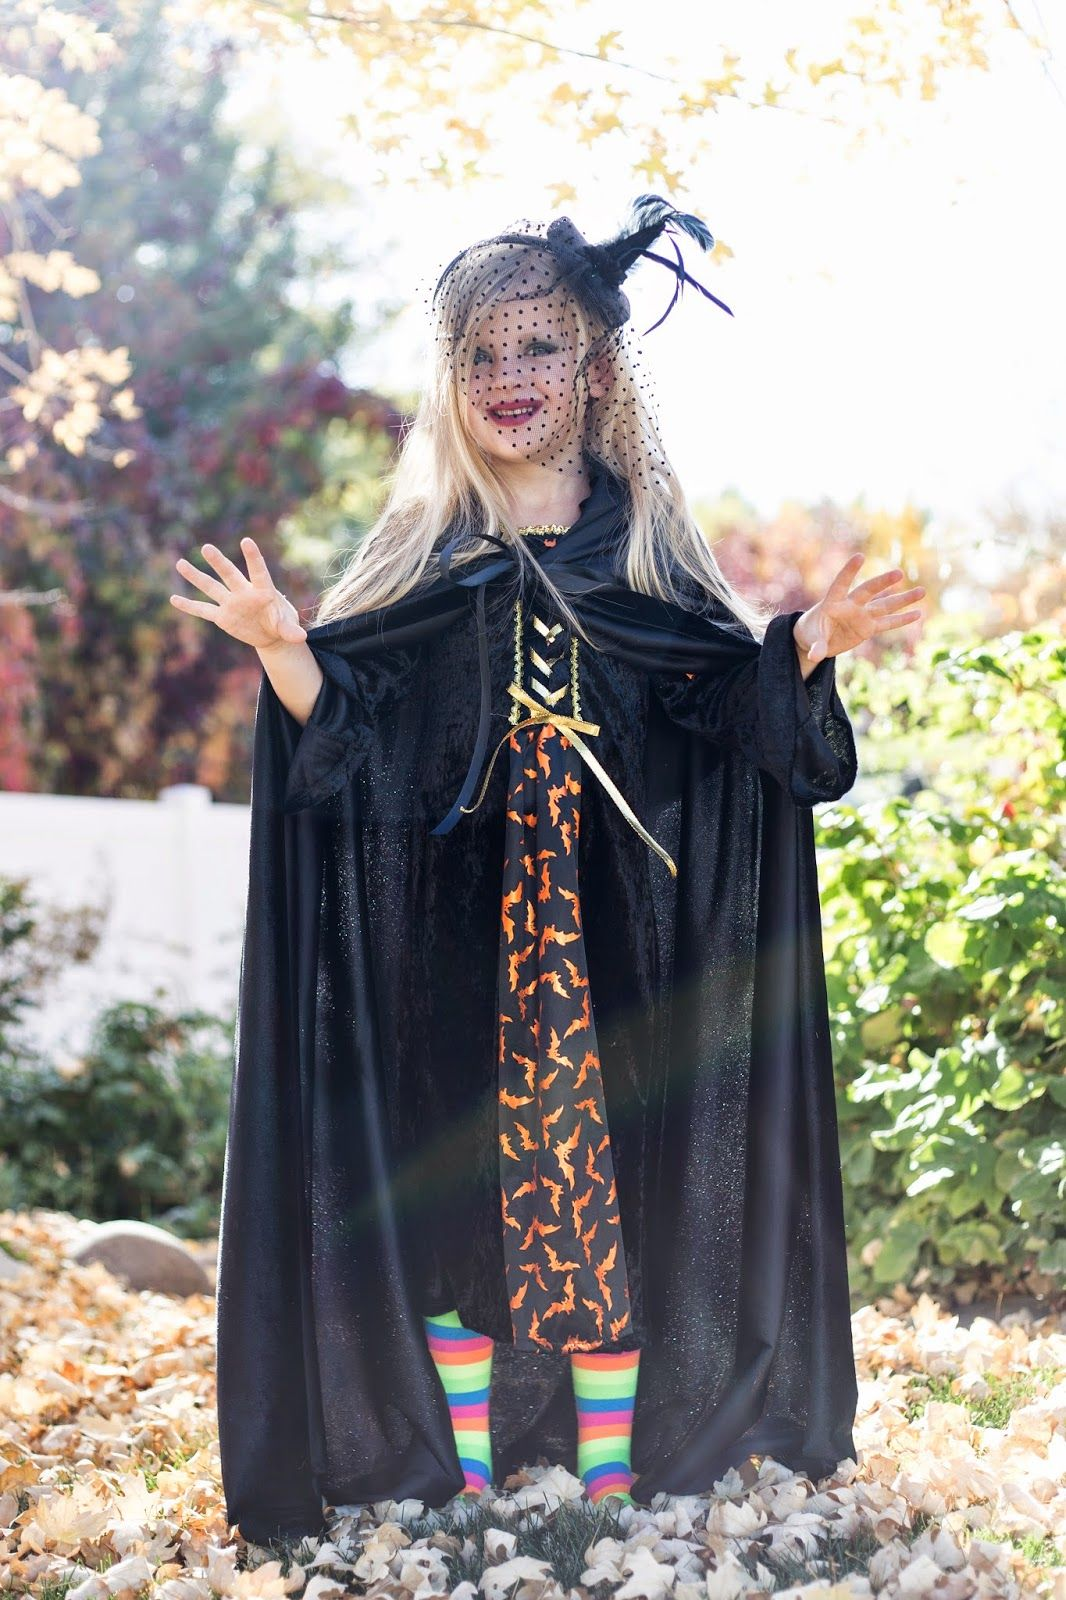 Do it yourself divas diy pretty witch costumes pinterest do it yourself divas diy pretty witch solutioingenieria Choice Image